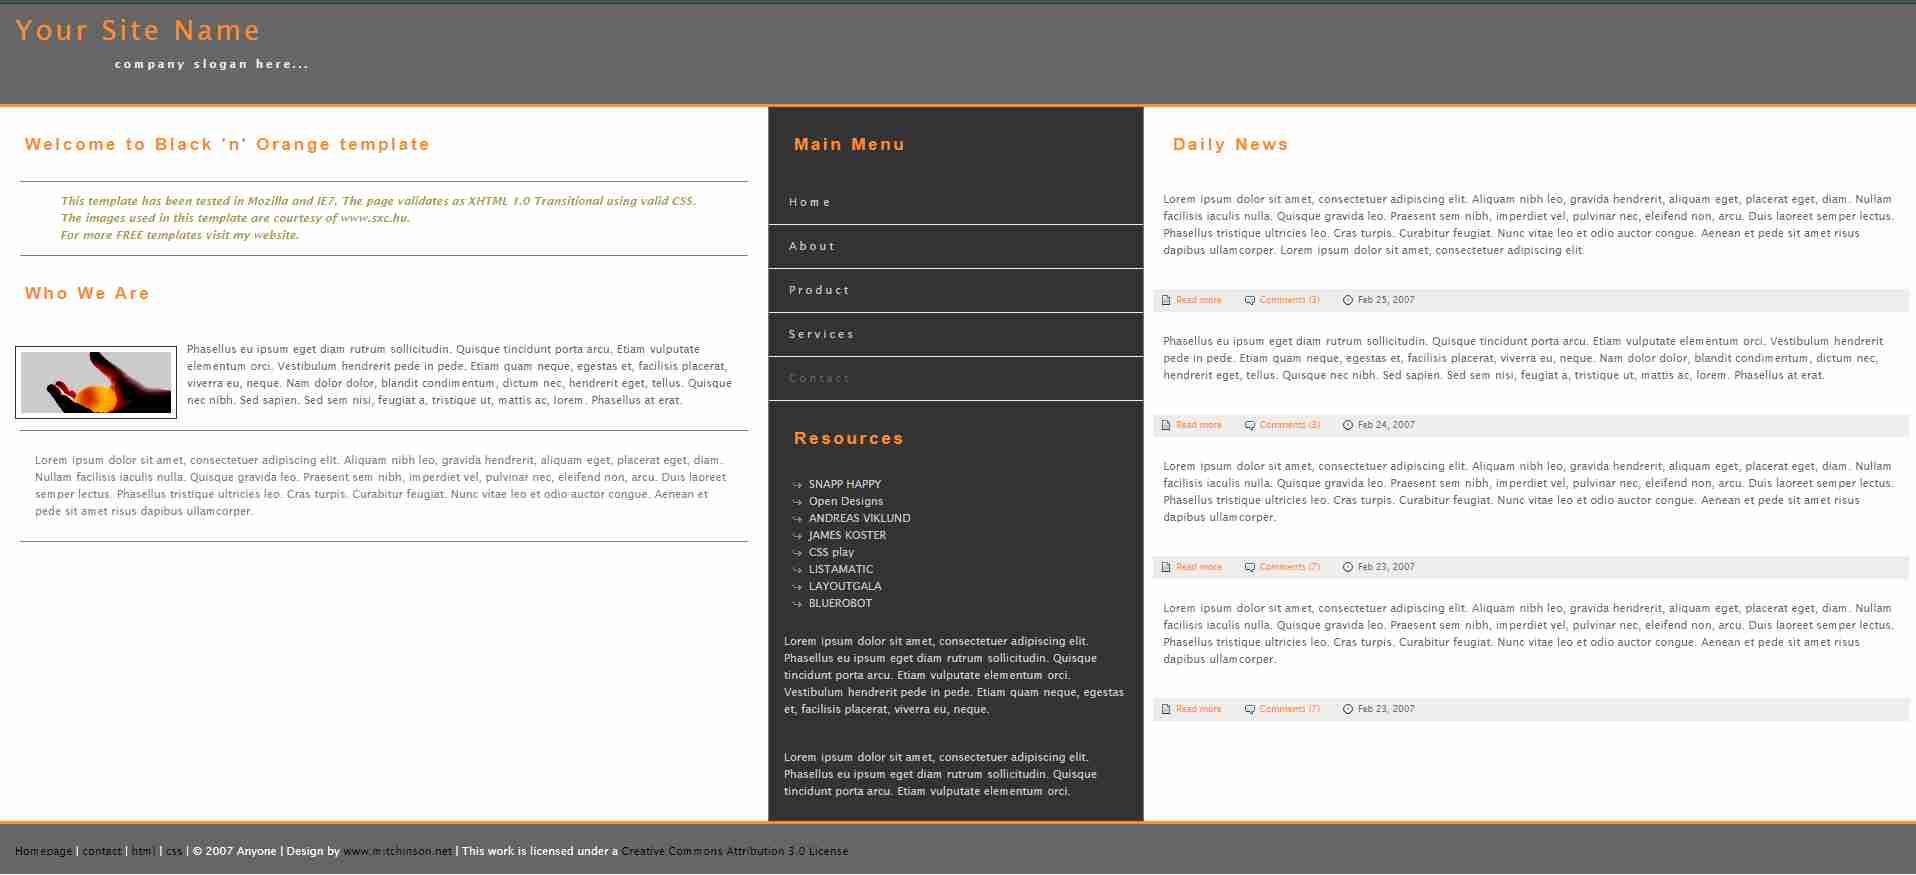 How to Create a Website using HTML and CSS | Homepage Design